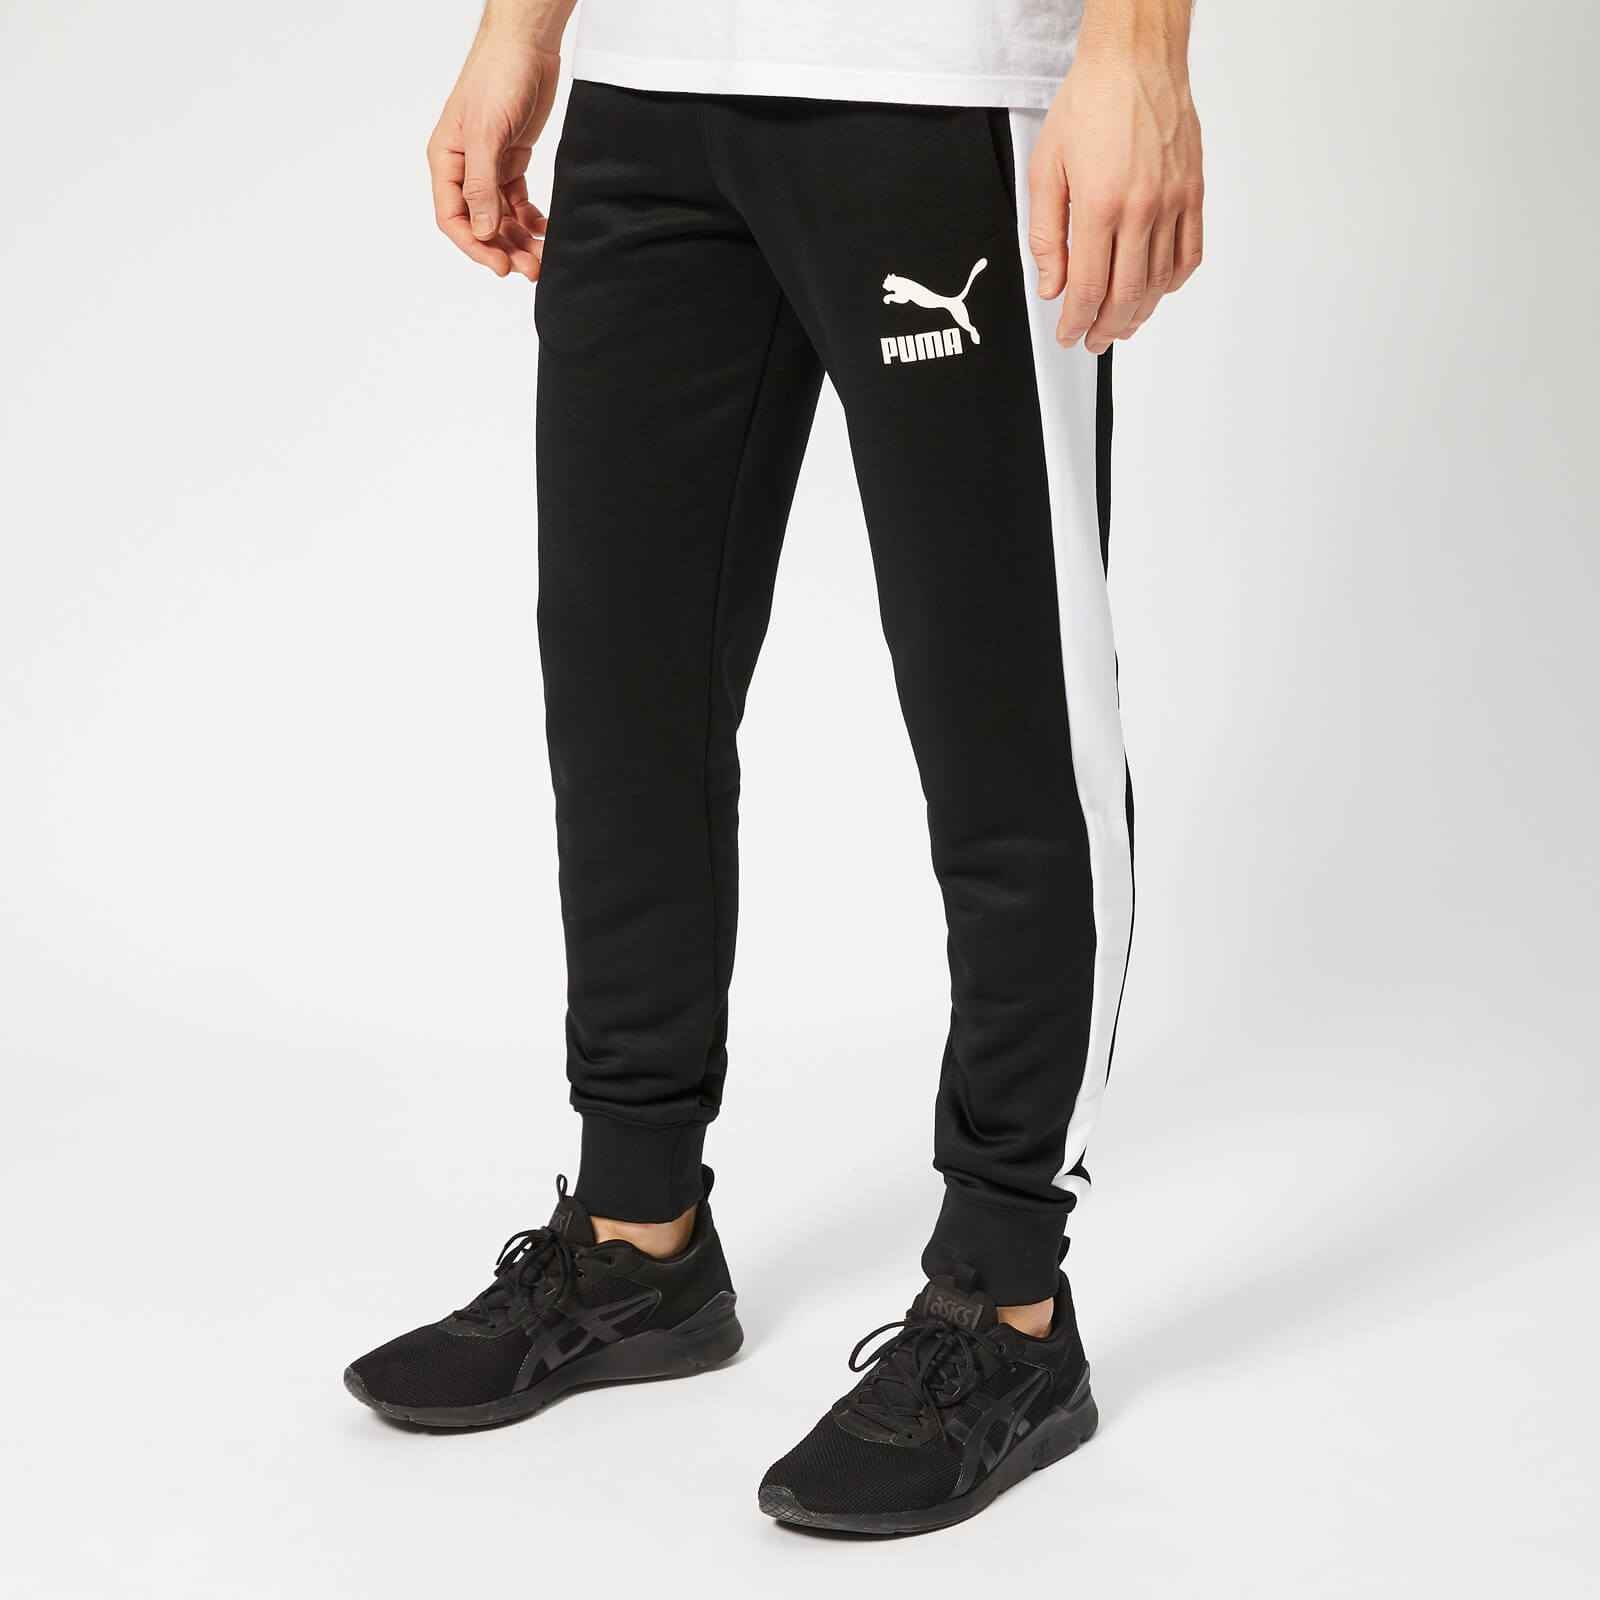 92b224e9 Puma Men's Iconic T7 Track Pants - Puma Black Sports & Leisure | TheHut.com